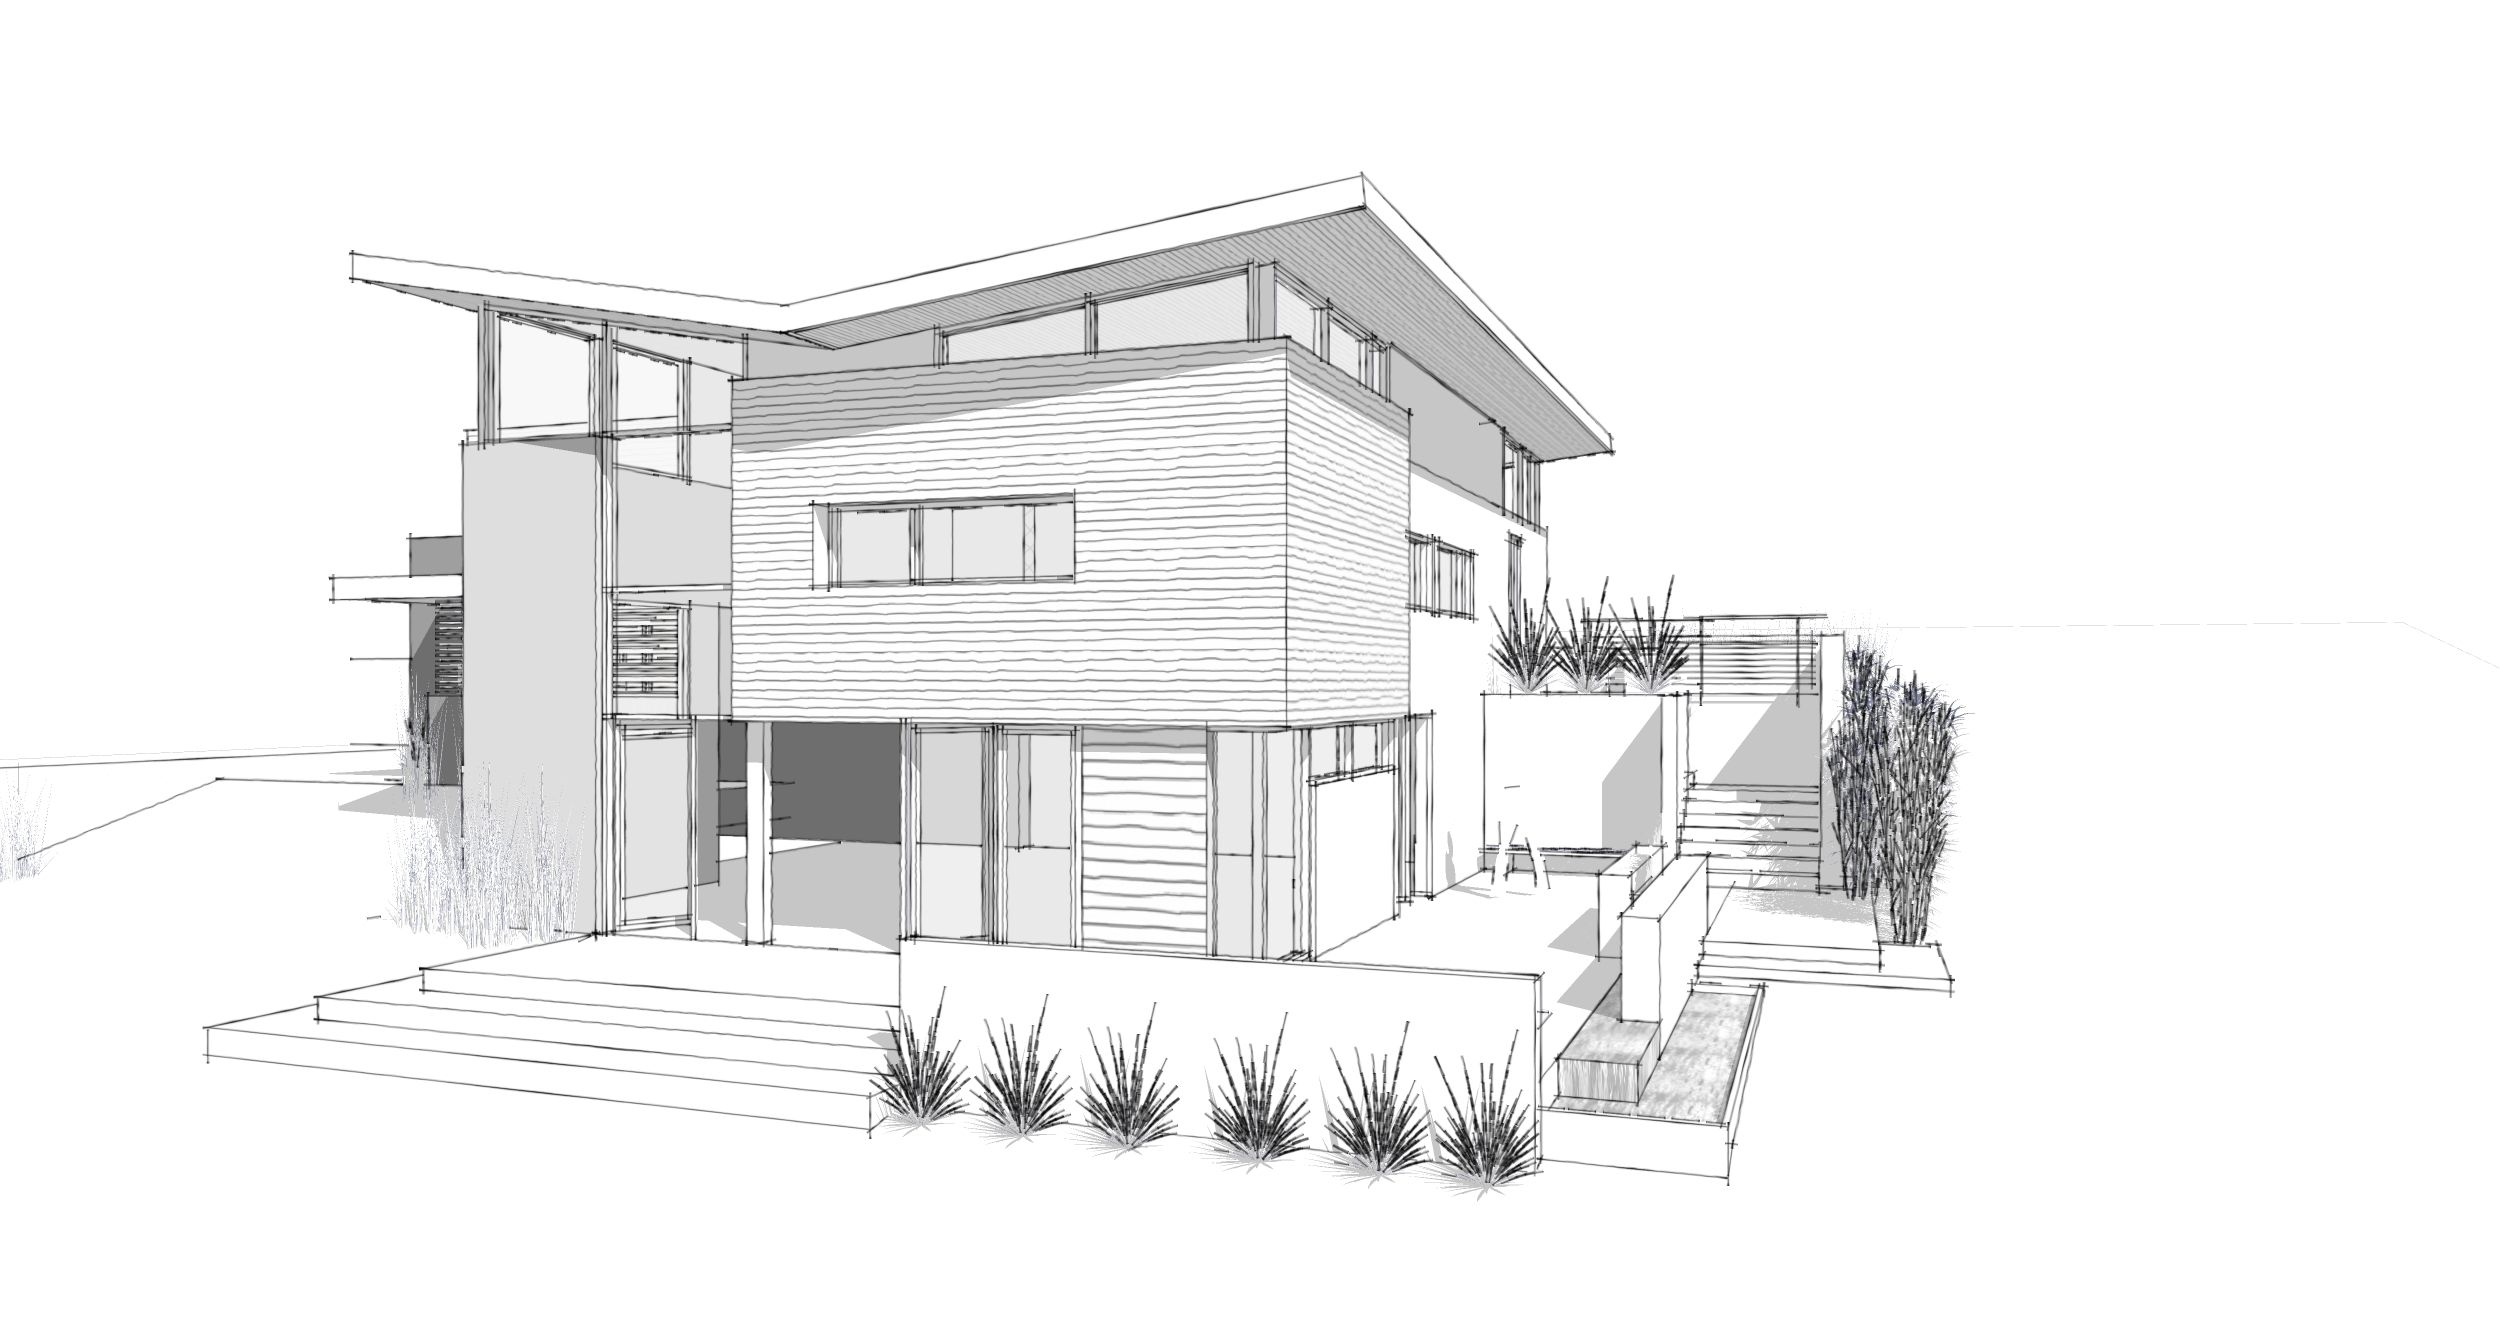 Modern home architecture sketches design ideas 13435 for Home design drawing